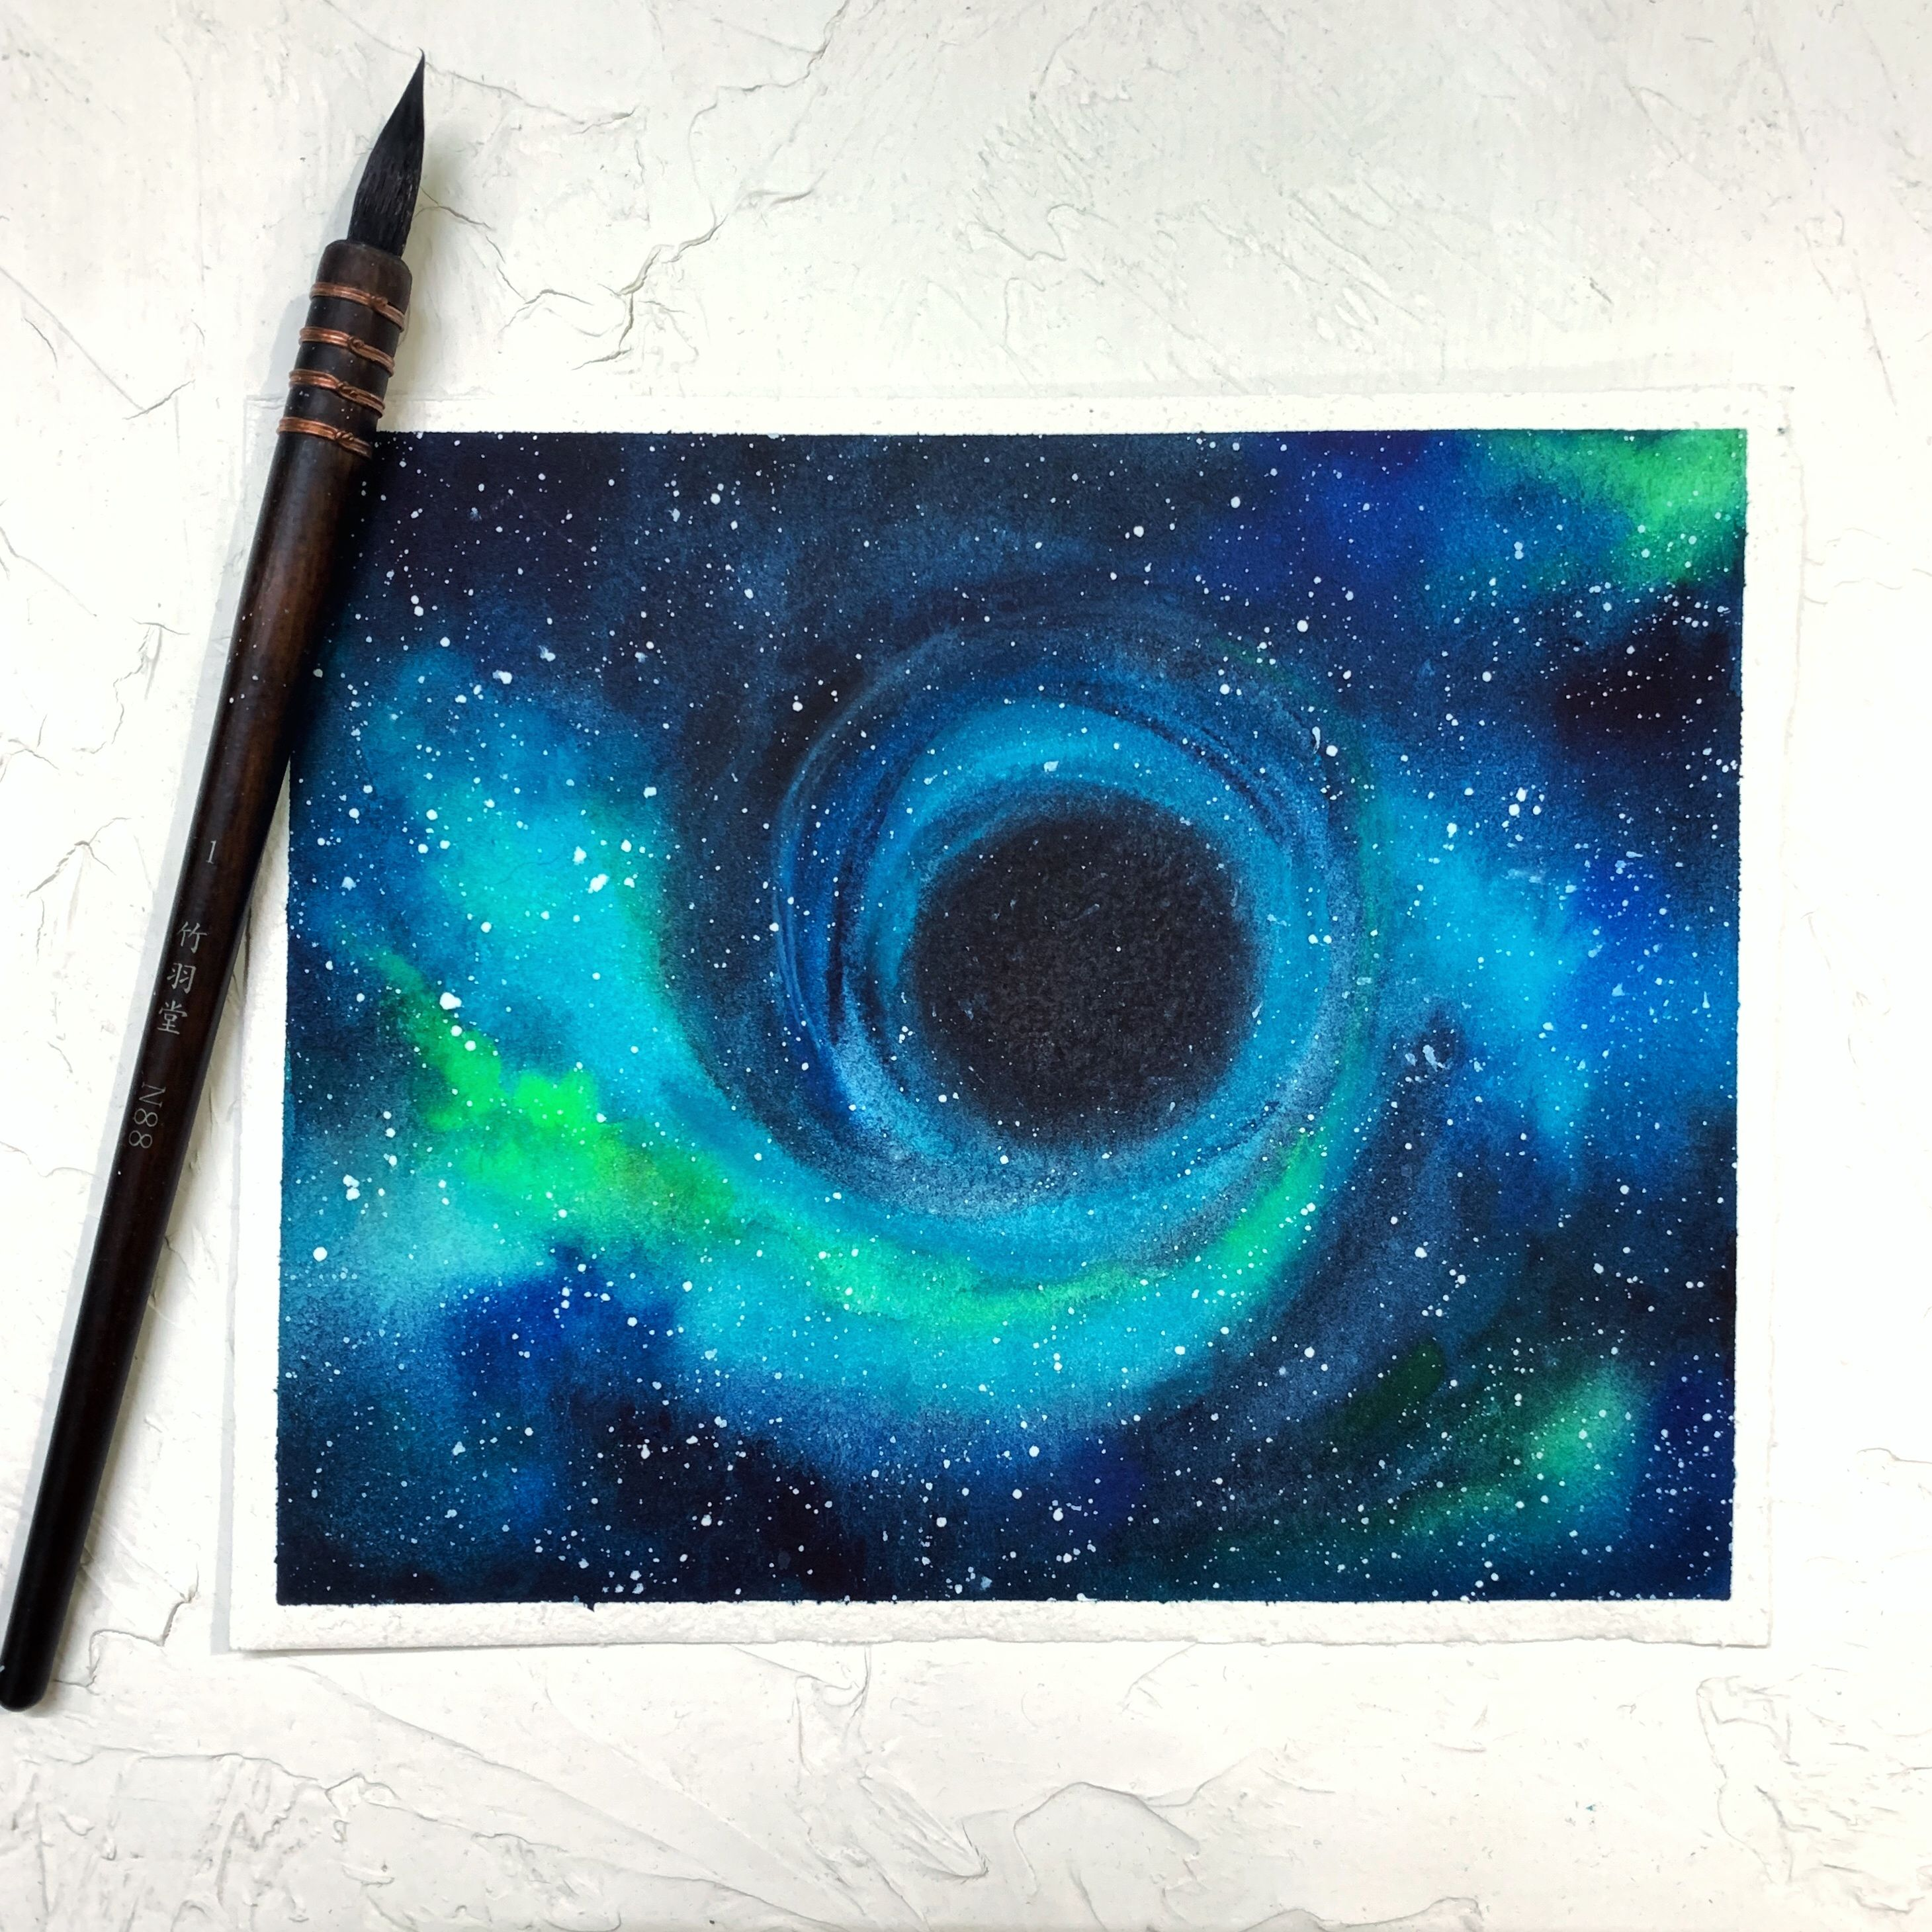 Watercolor Art Watercolor Painting Watercolor Art For Beginner Northern Lights Painting Acrylic Northern Lights Watercolor Watercolor Paintings For Beginners